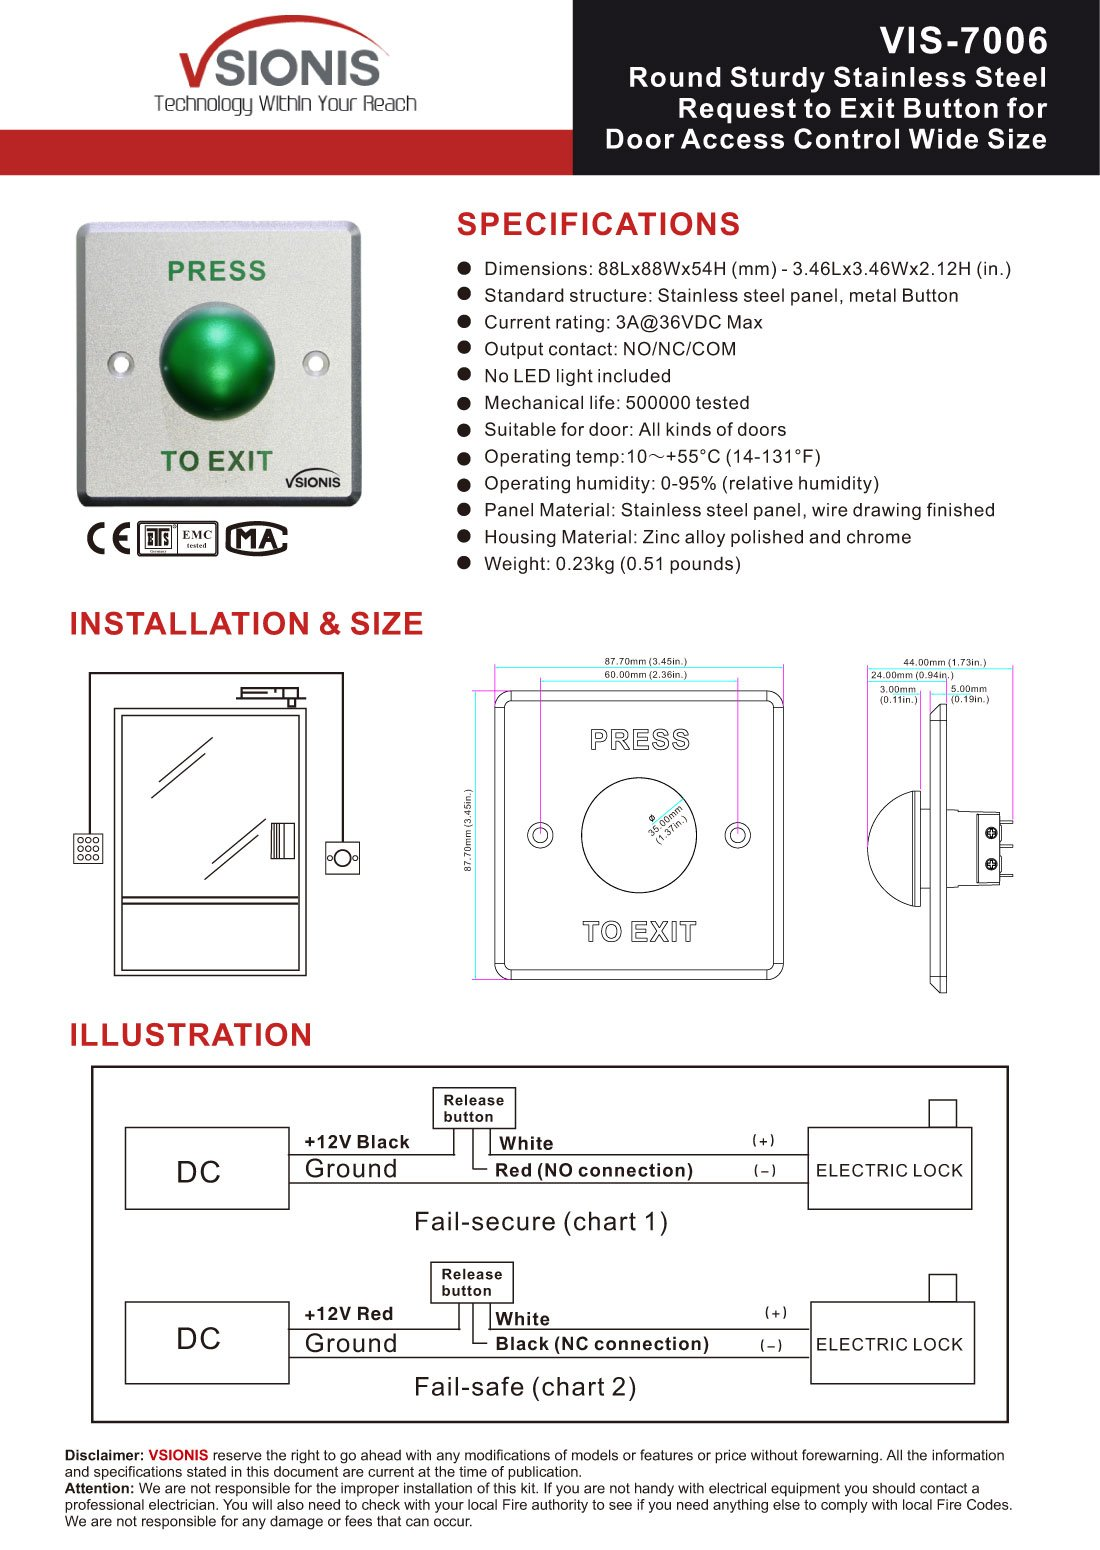 Visionis VIS-7006 Round Sturdy Stainless Steel Request to Exit Button for Door Access Control Wide Size, NC and NO Outputs